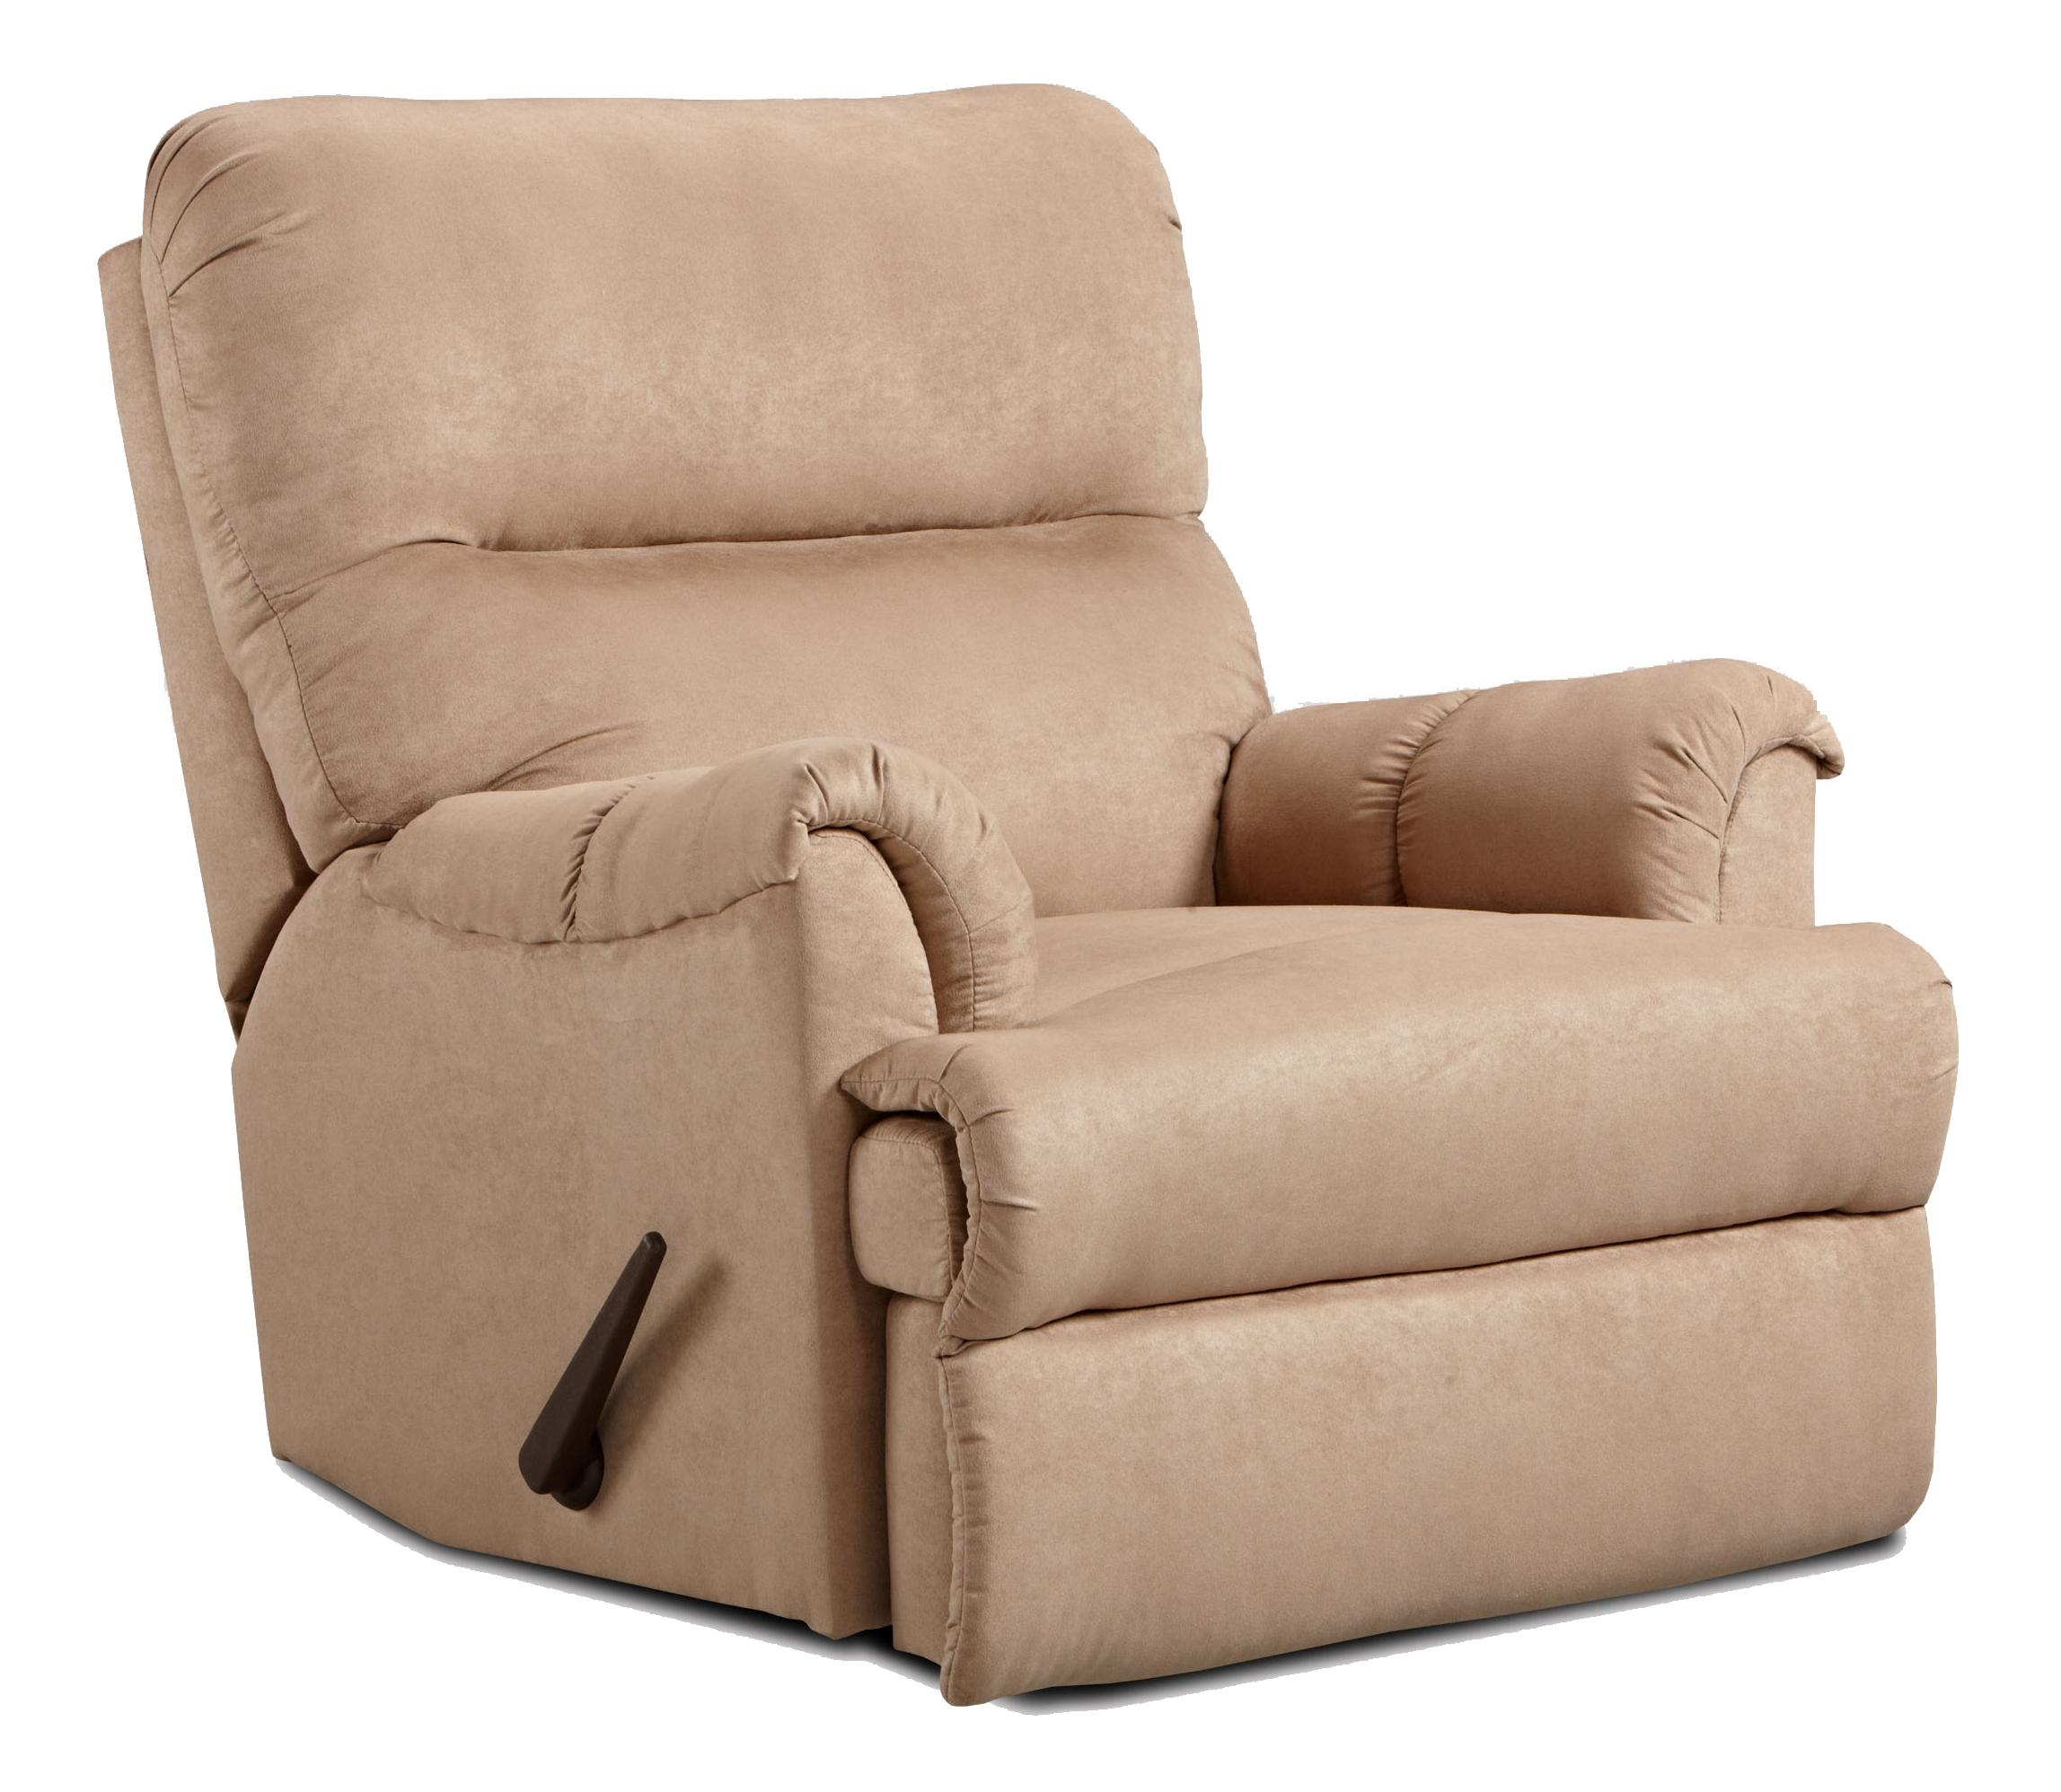 2155 Chaise Rocker Recliner by Affordable Furniture at Wilcox Furniture